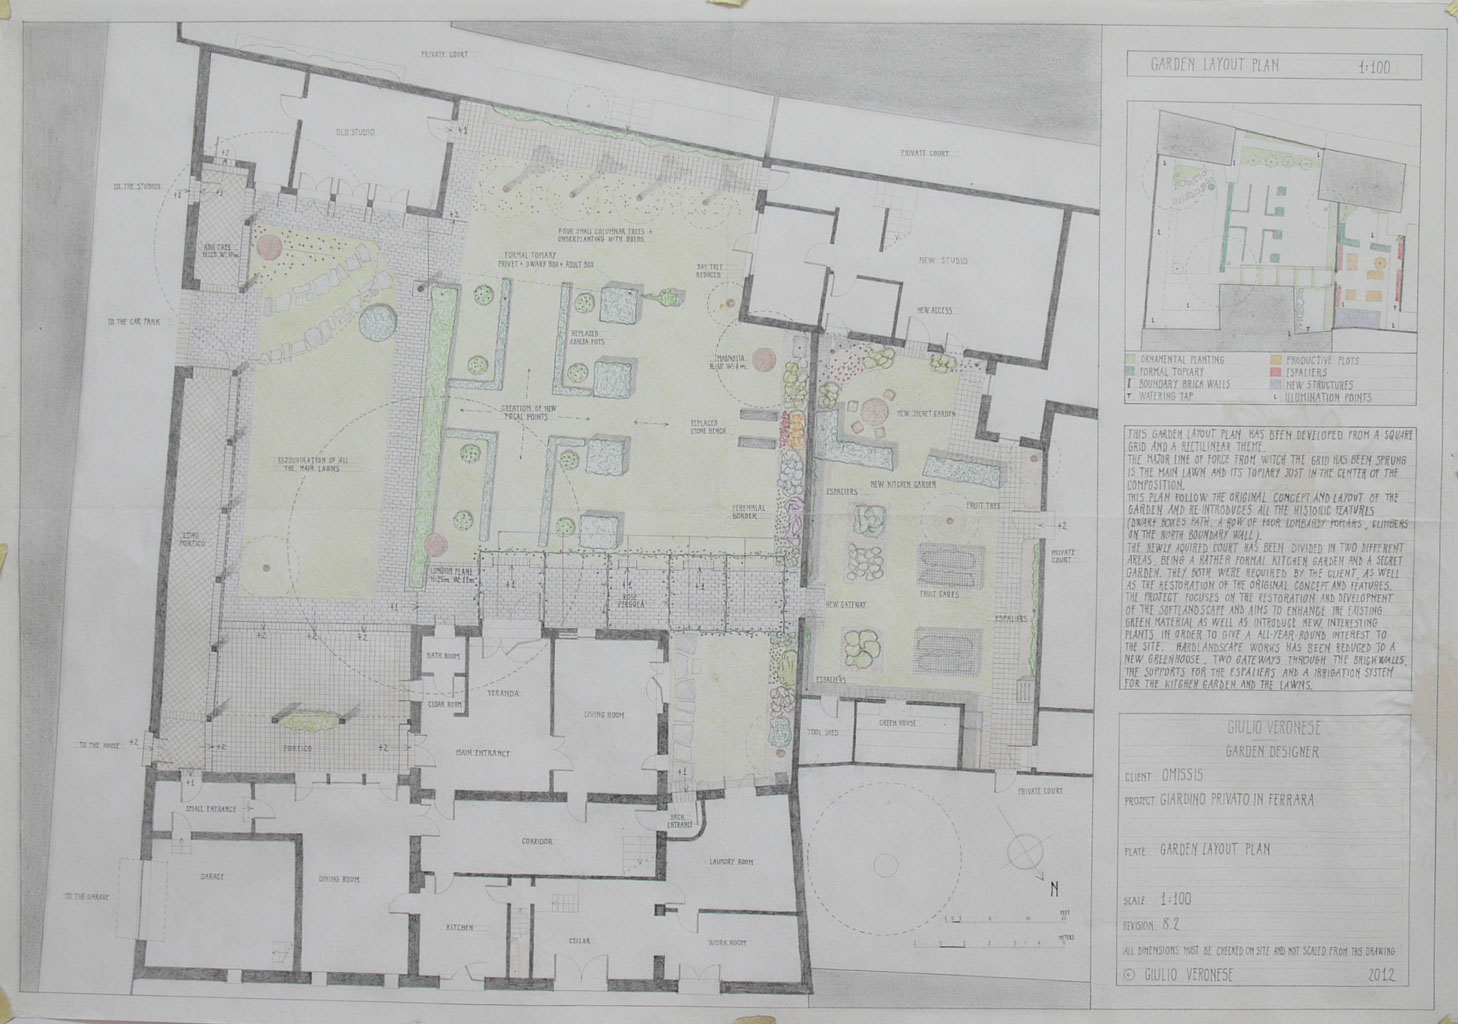 Plate 8 - Garden layout plan